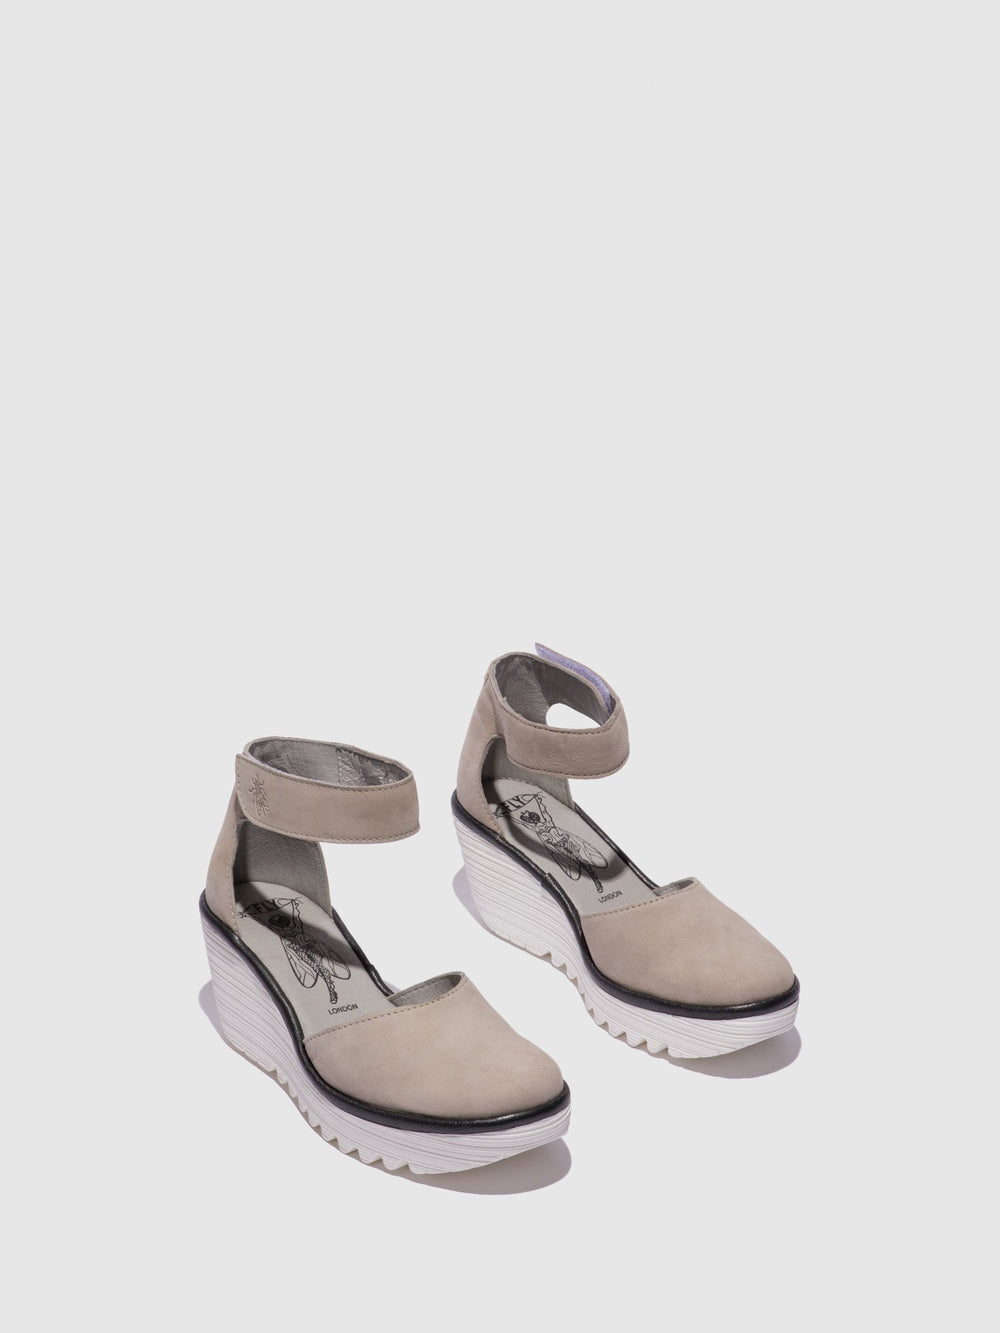 Ankle Strap Sandals YAND709FLY CONCRETE (WHITE SOLE)